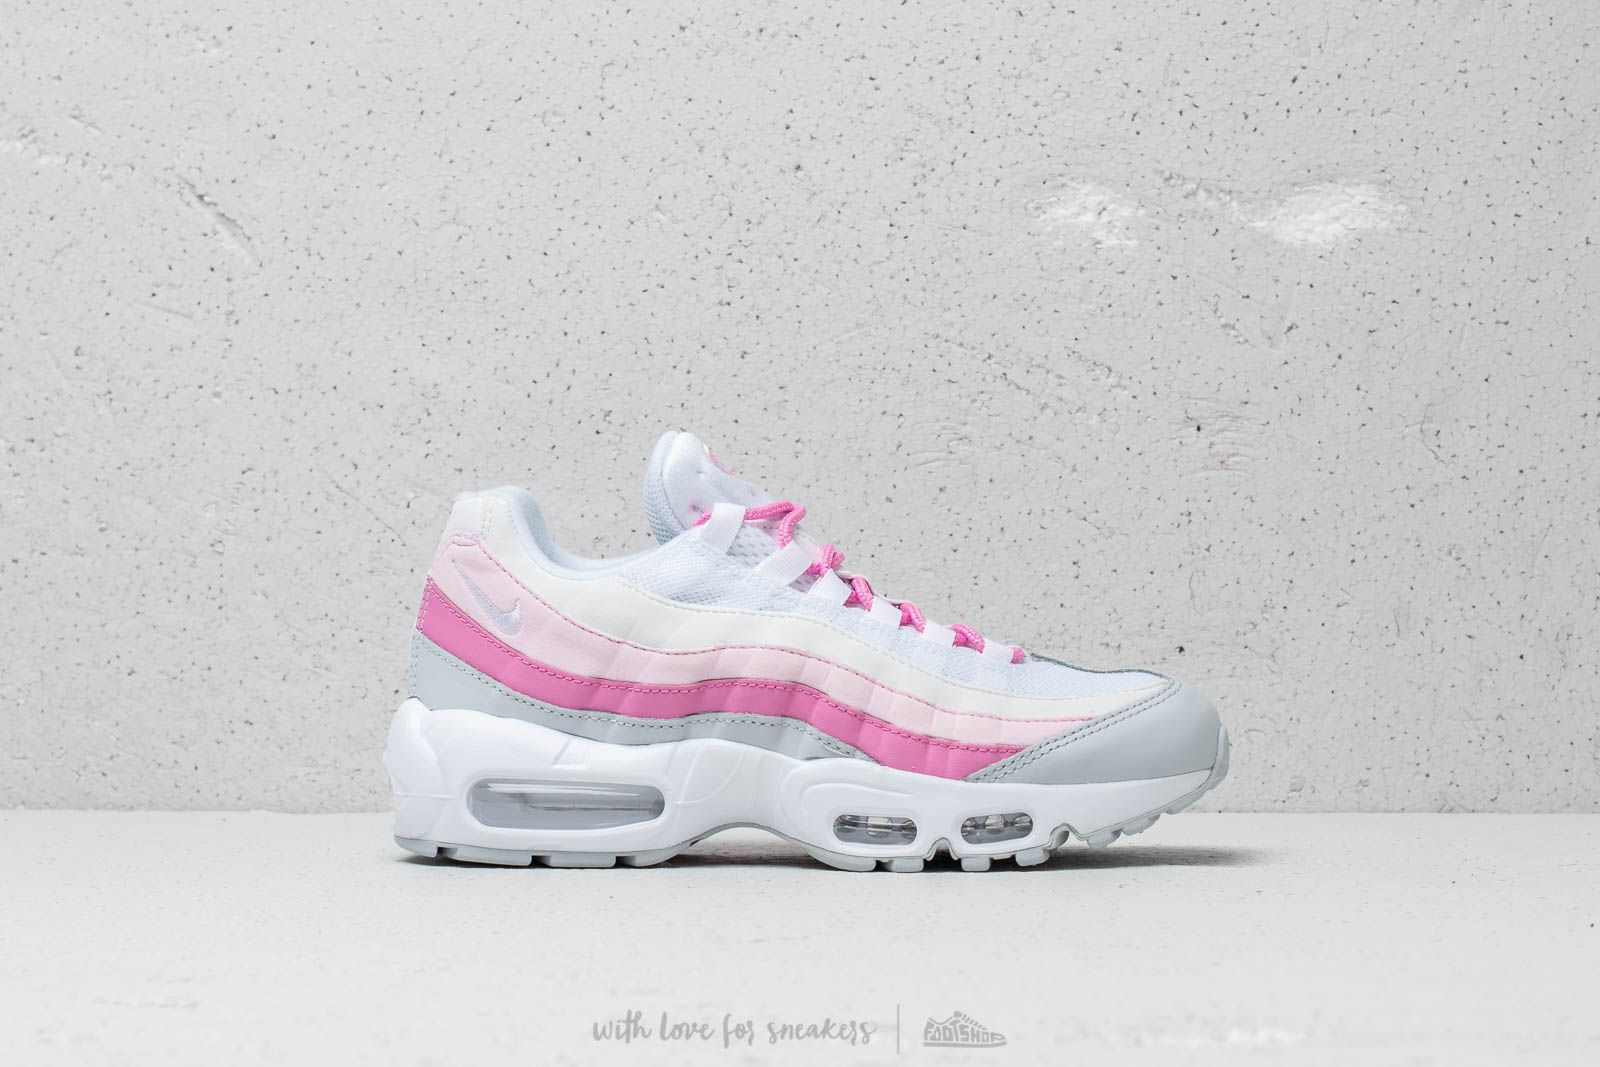 nike air max 95 white and pink